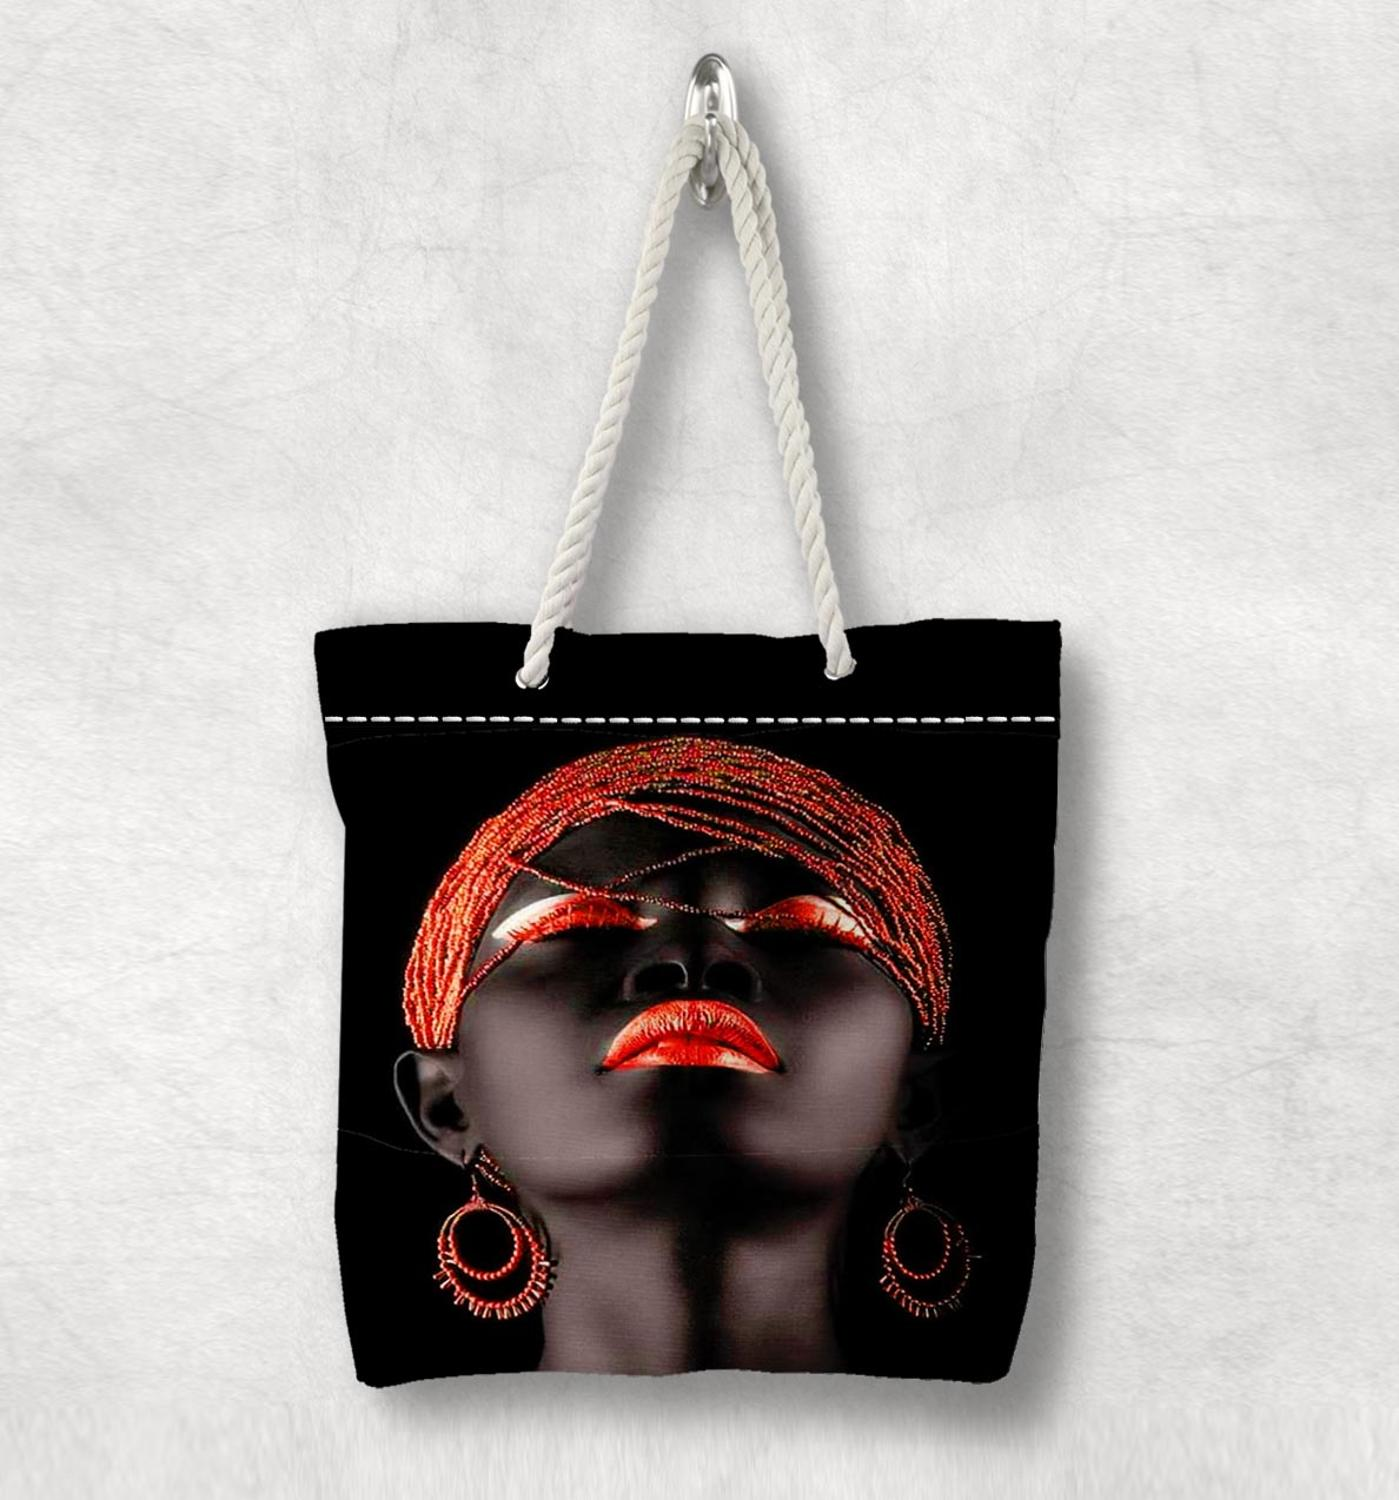 Else Black Girl Orange Hair Lips New Fashion White Rope Handle Canvas Bag Cotton Canvas Zippered Tote Bag Shoulder Bag